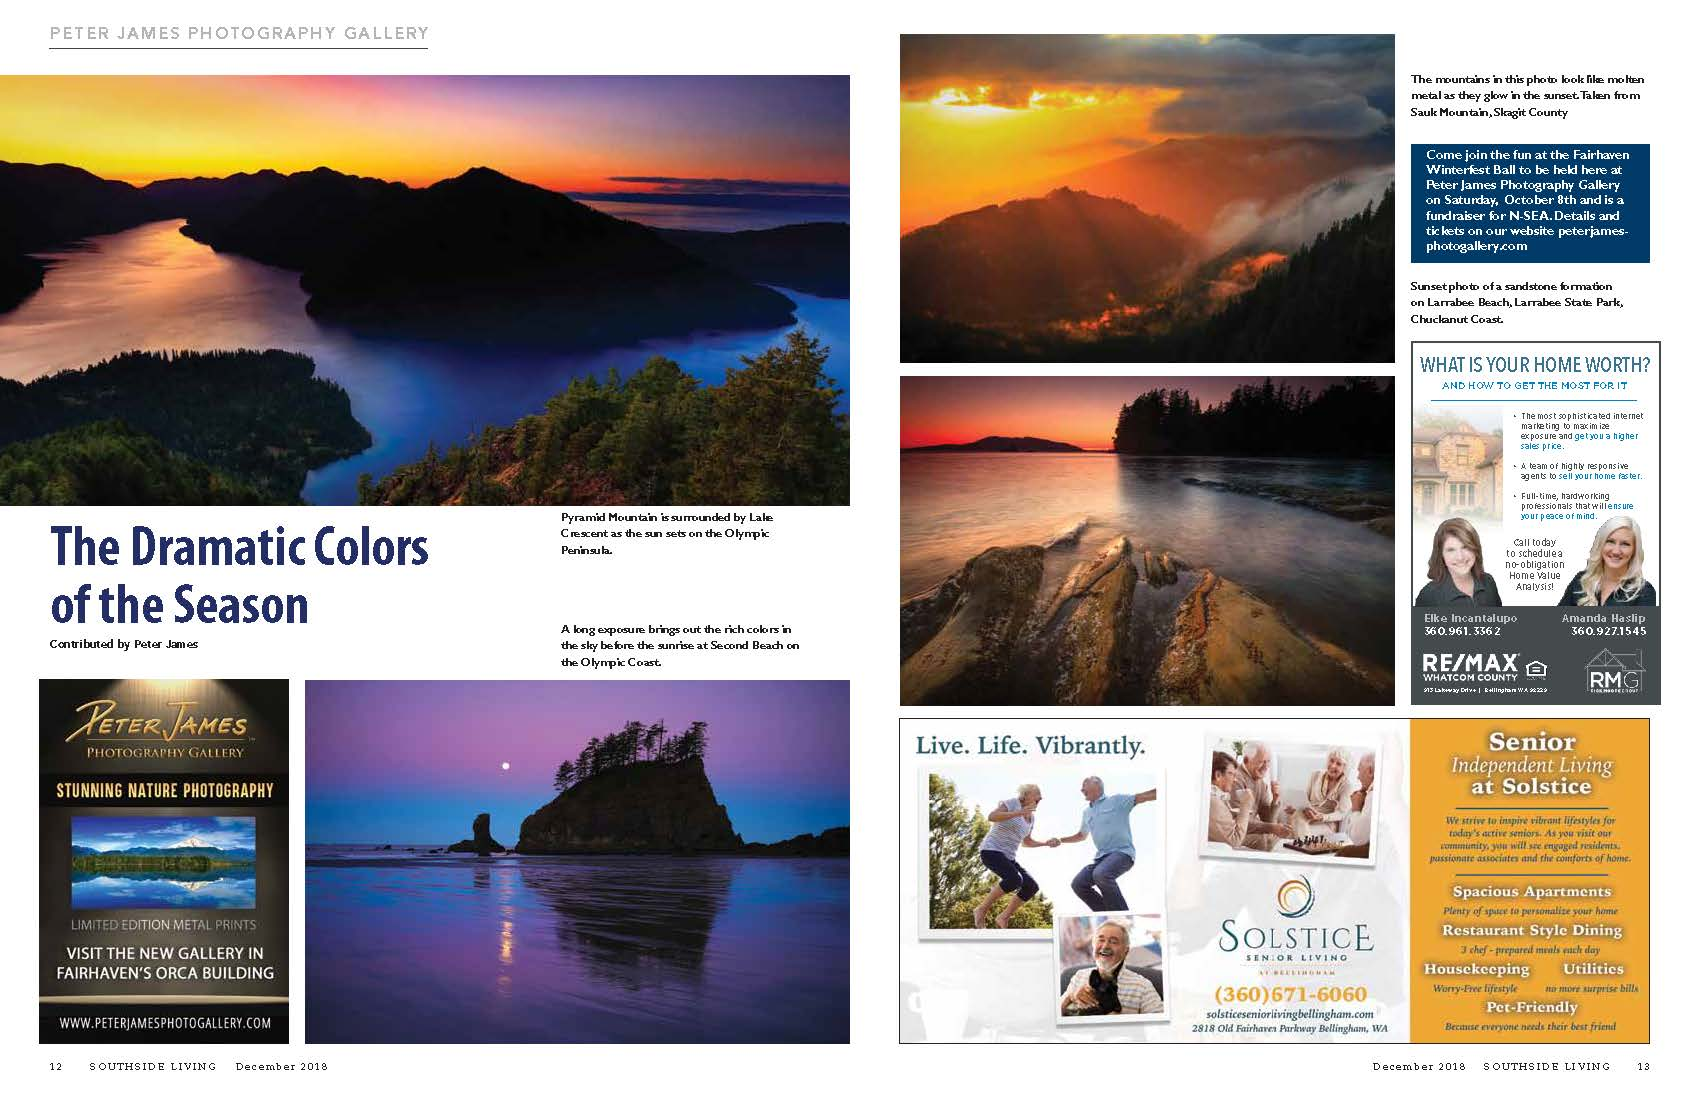 Colorful Sunset Photos